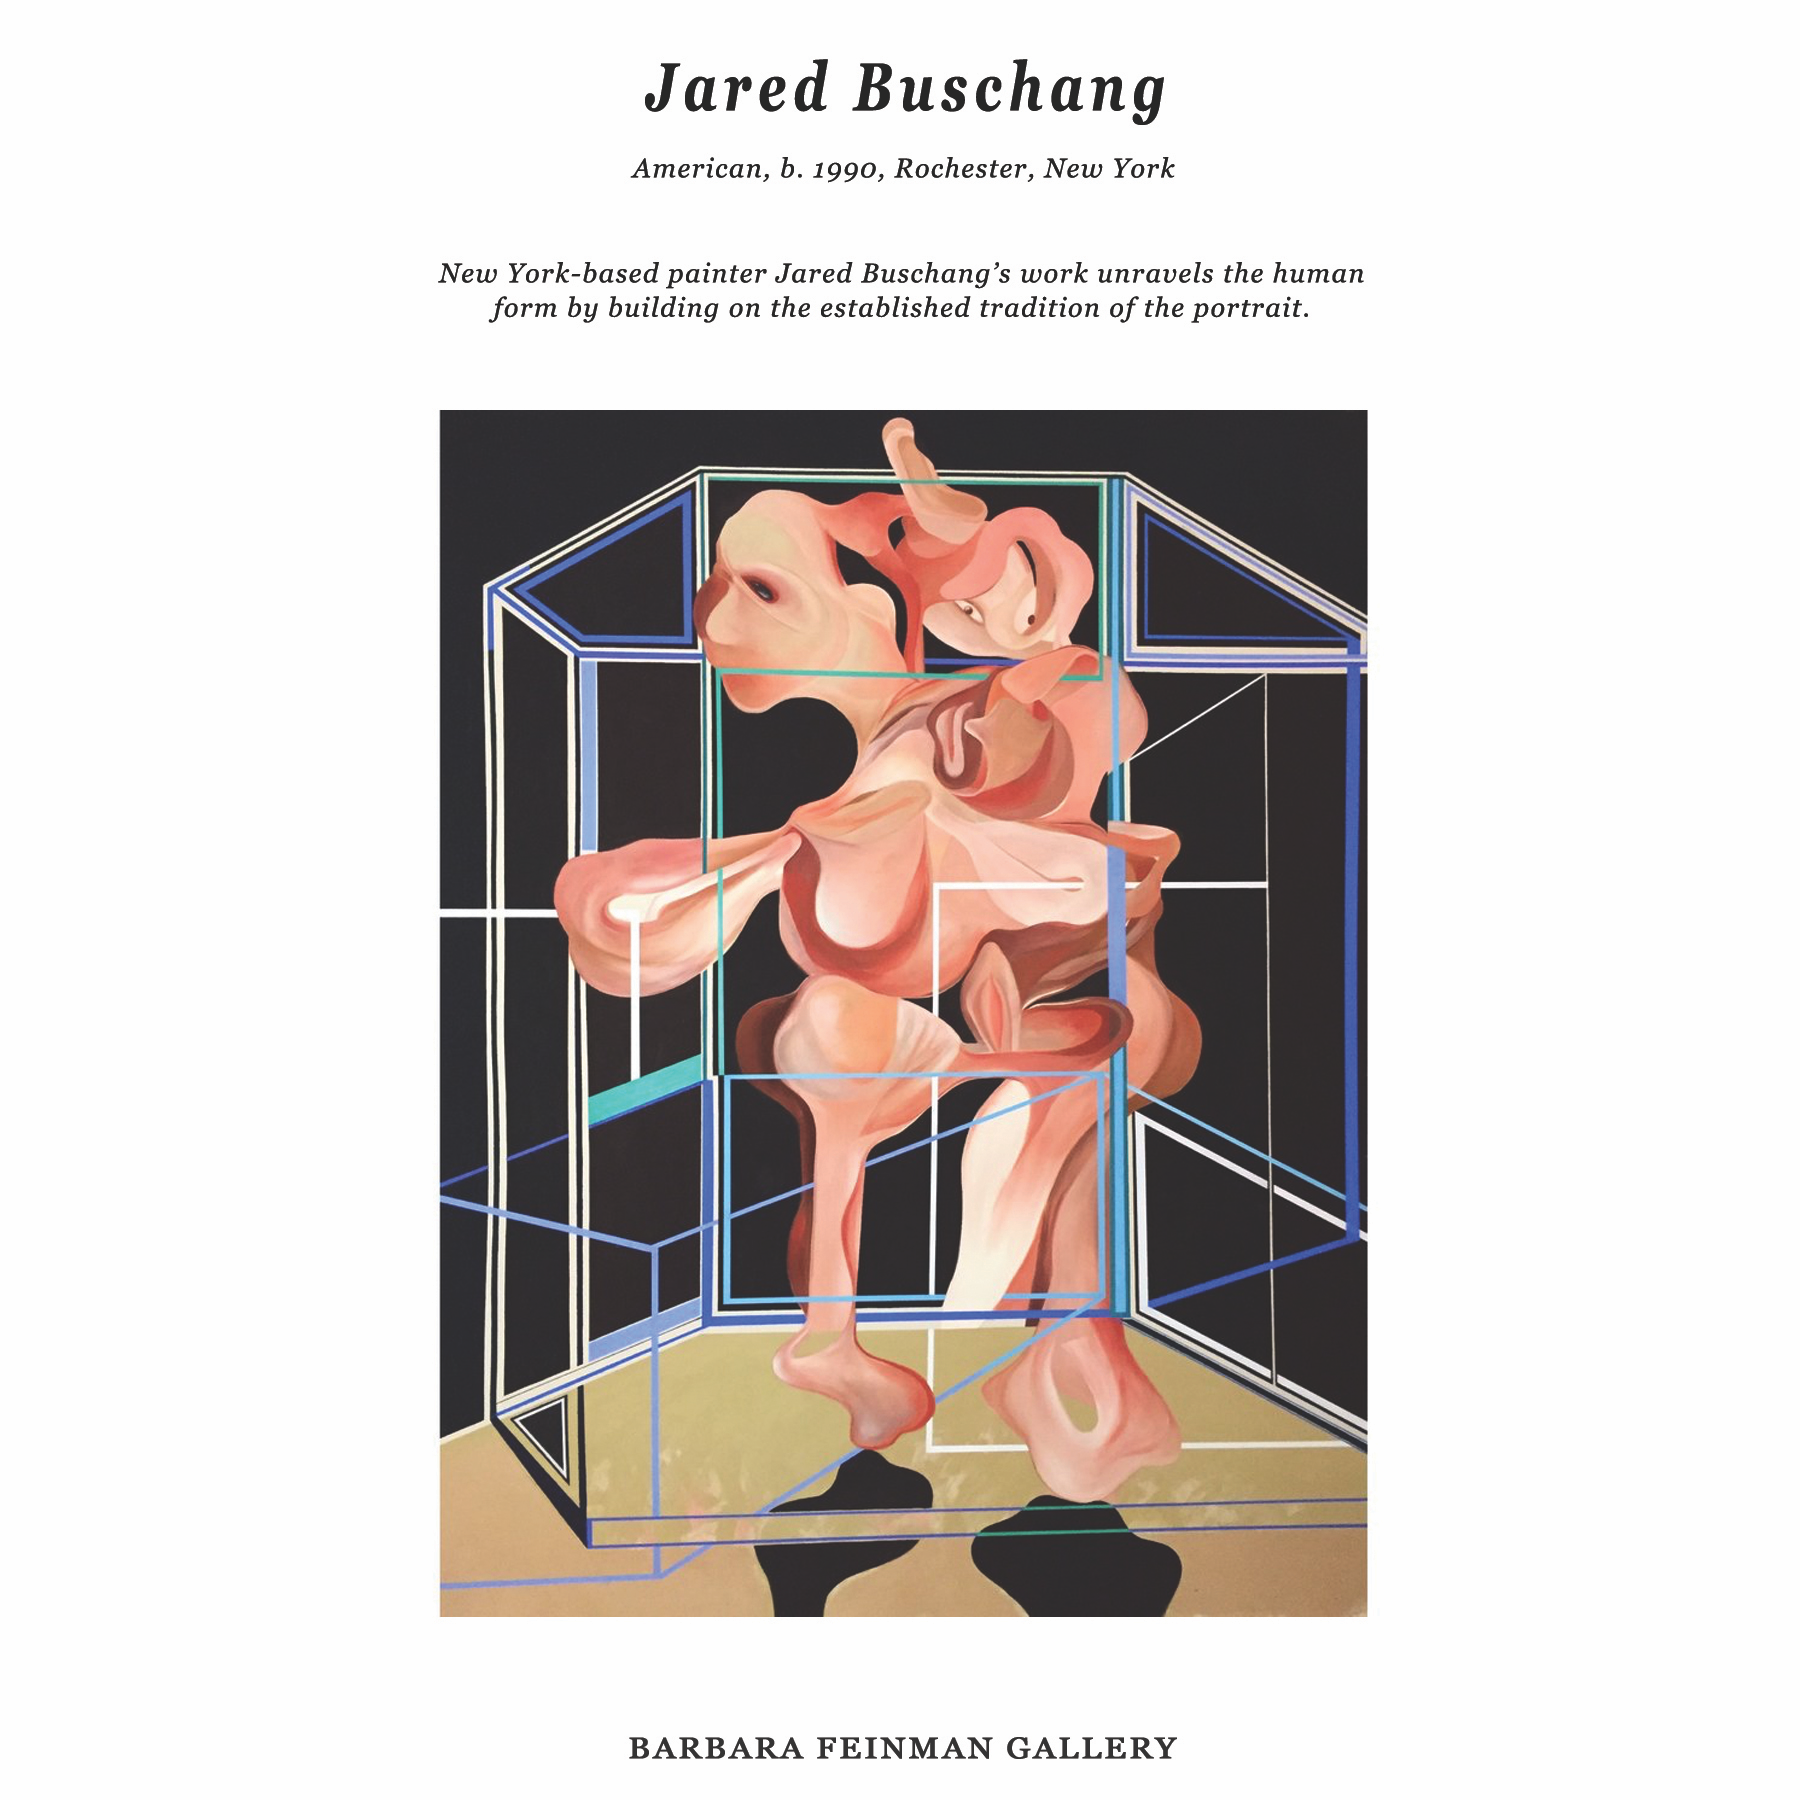 bf presents works jared buschang.png